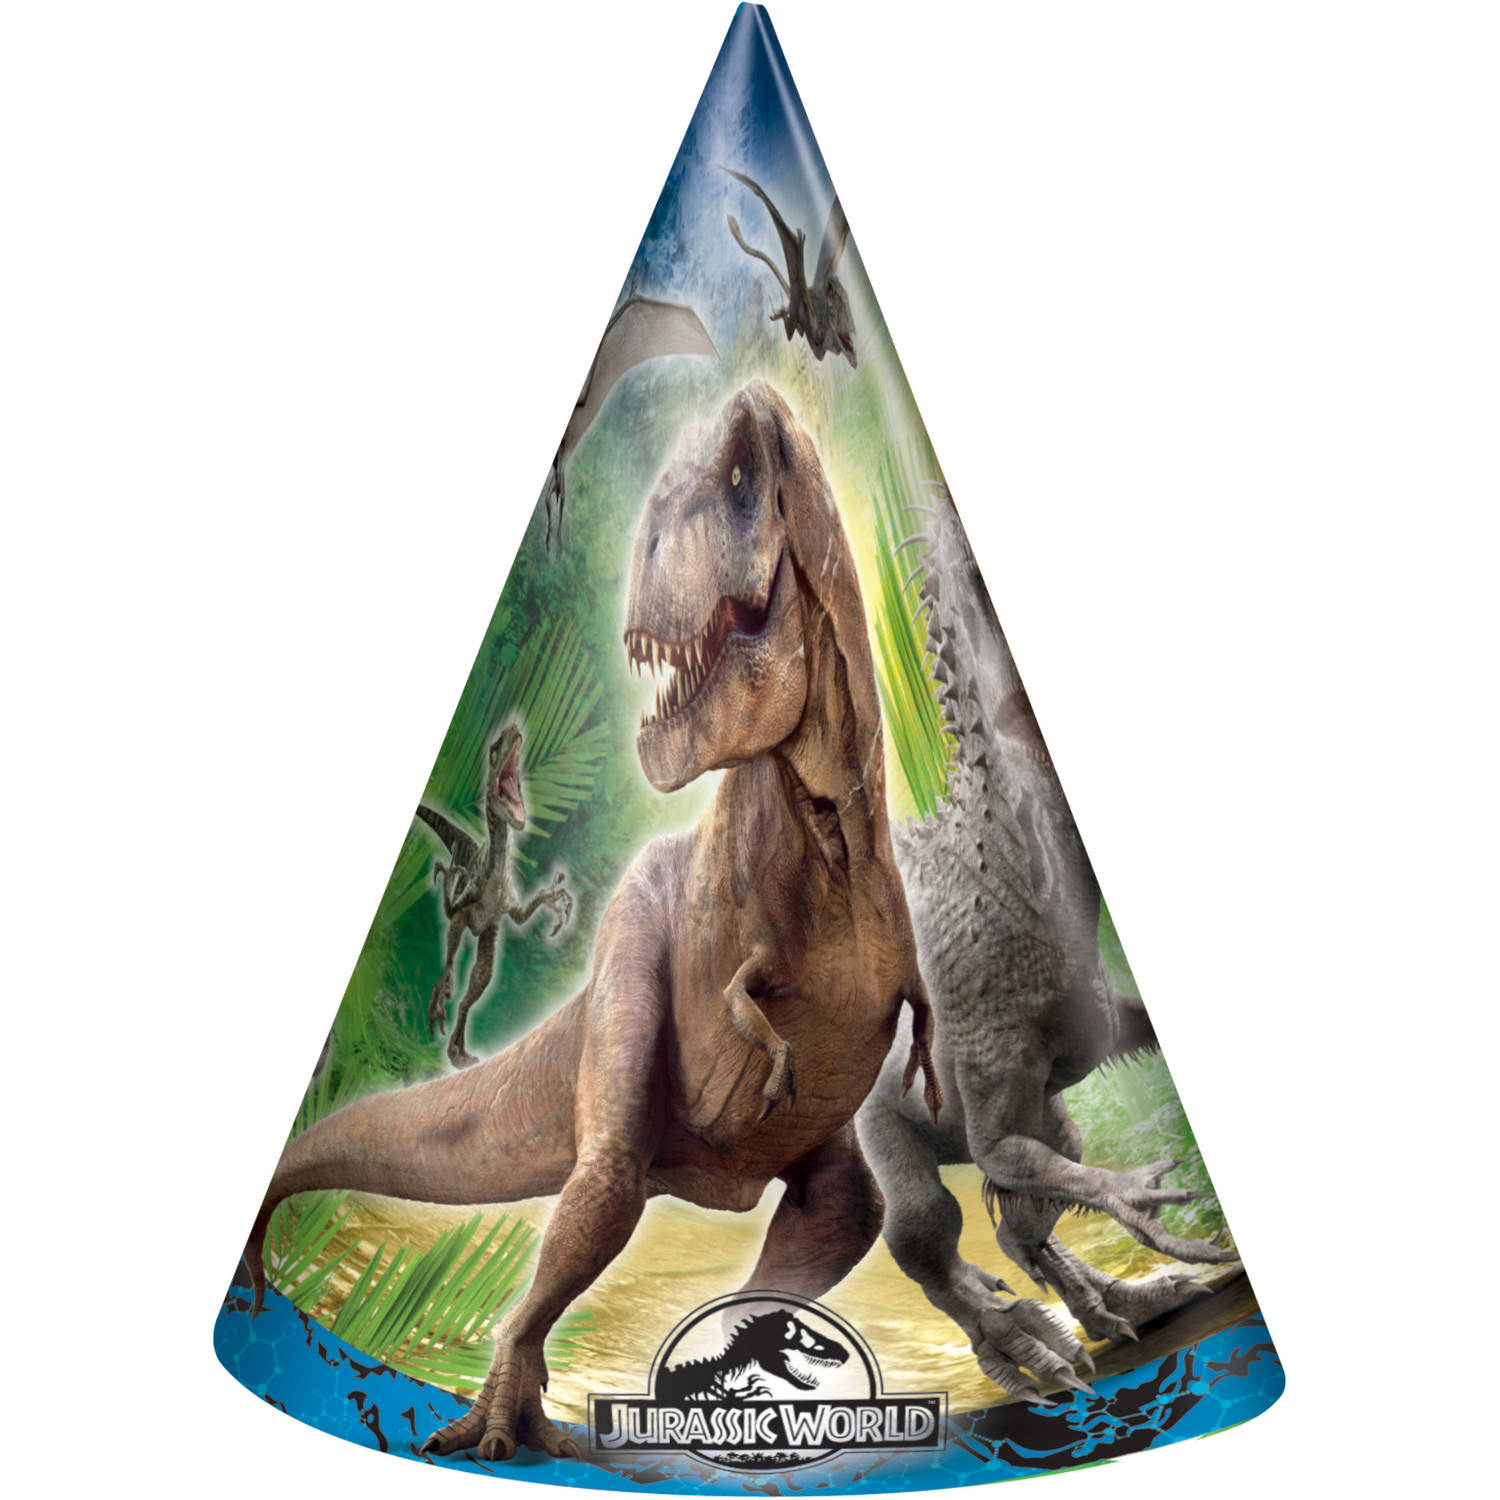 (3 pack) Jurassic World Party Hats, 8ct